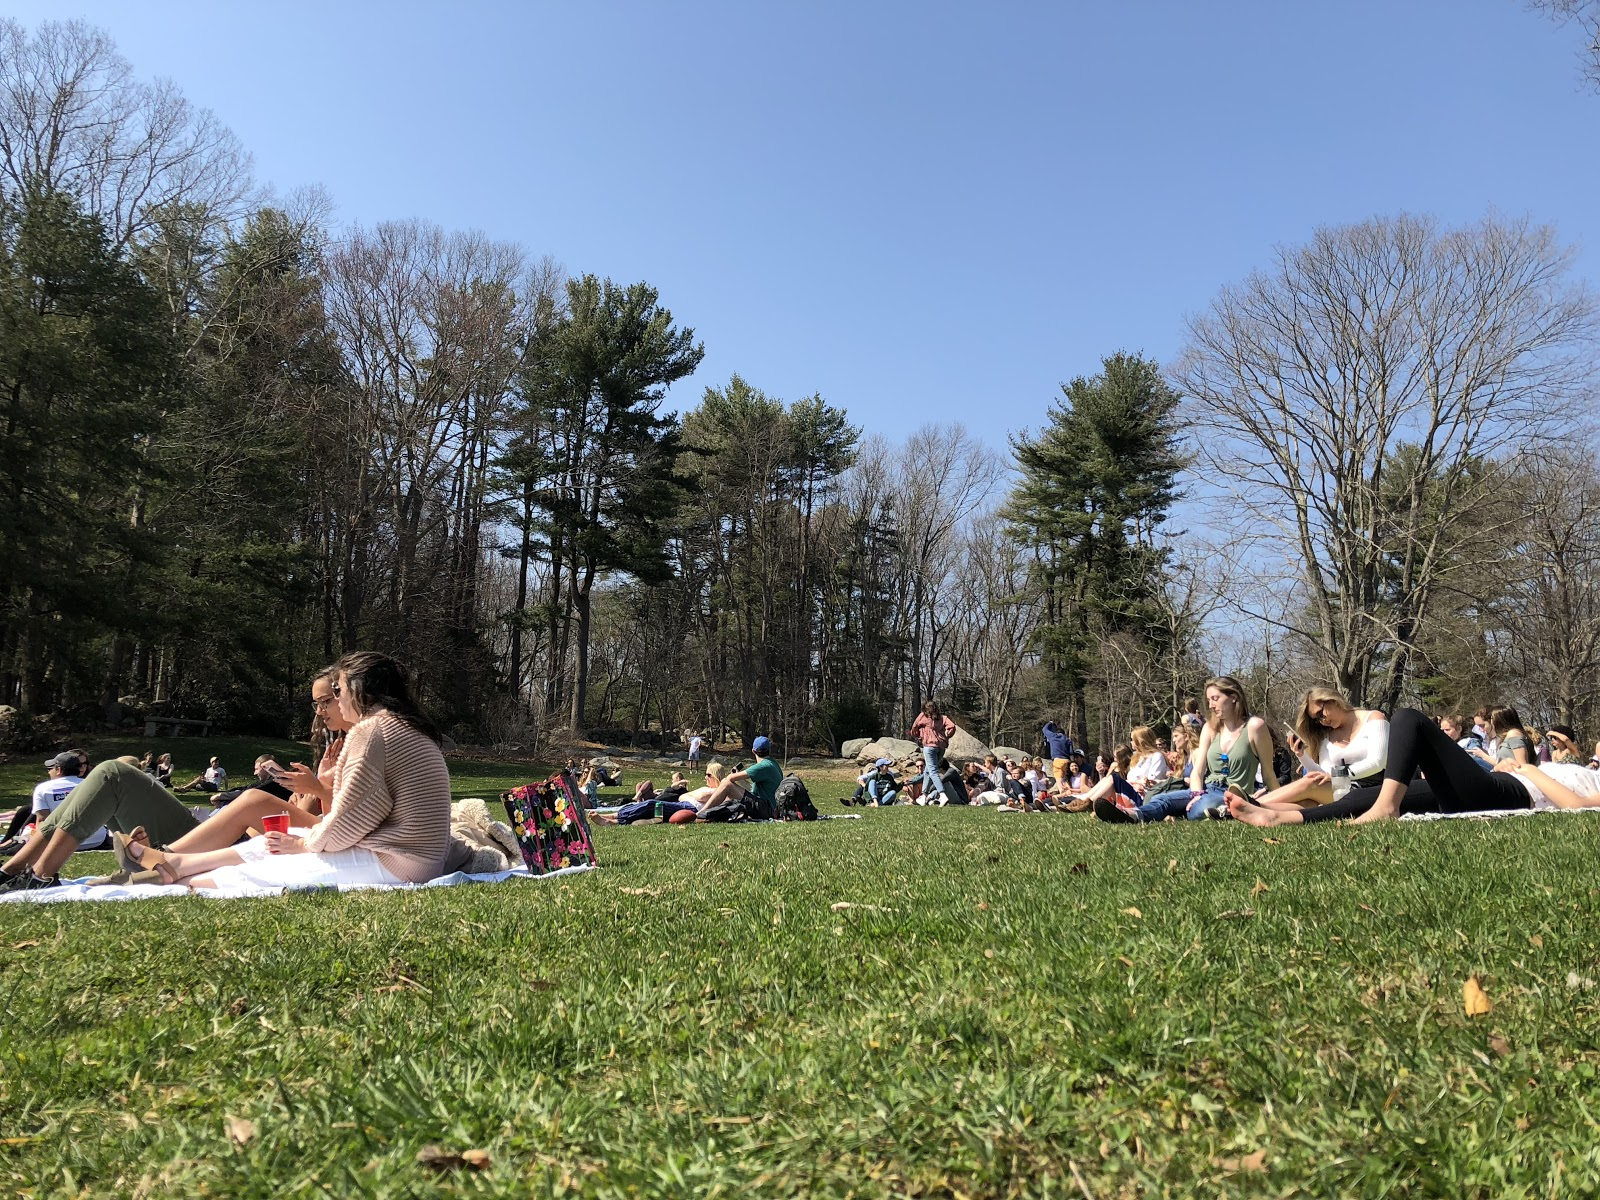 Students lay out on blankets in the Arboretum to listen to music at Arbofest